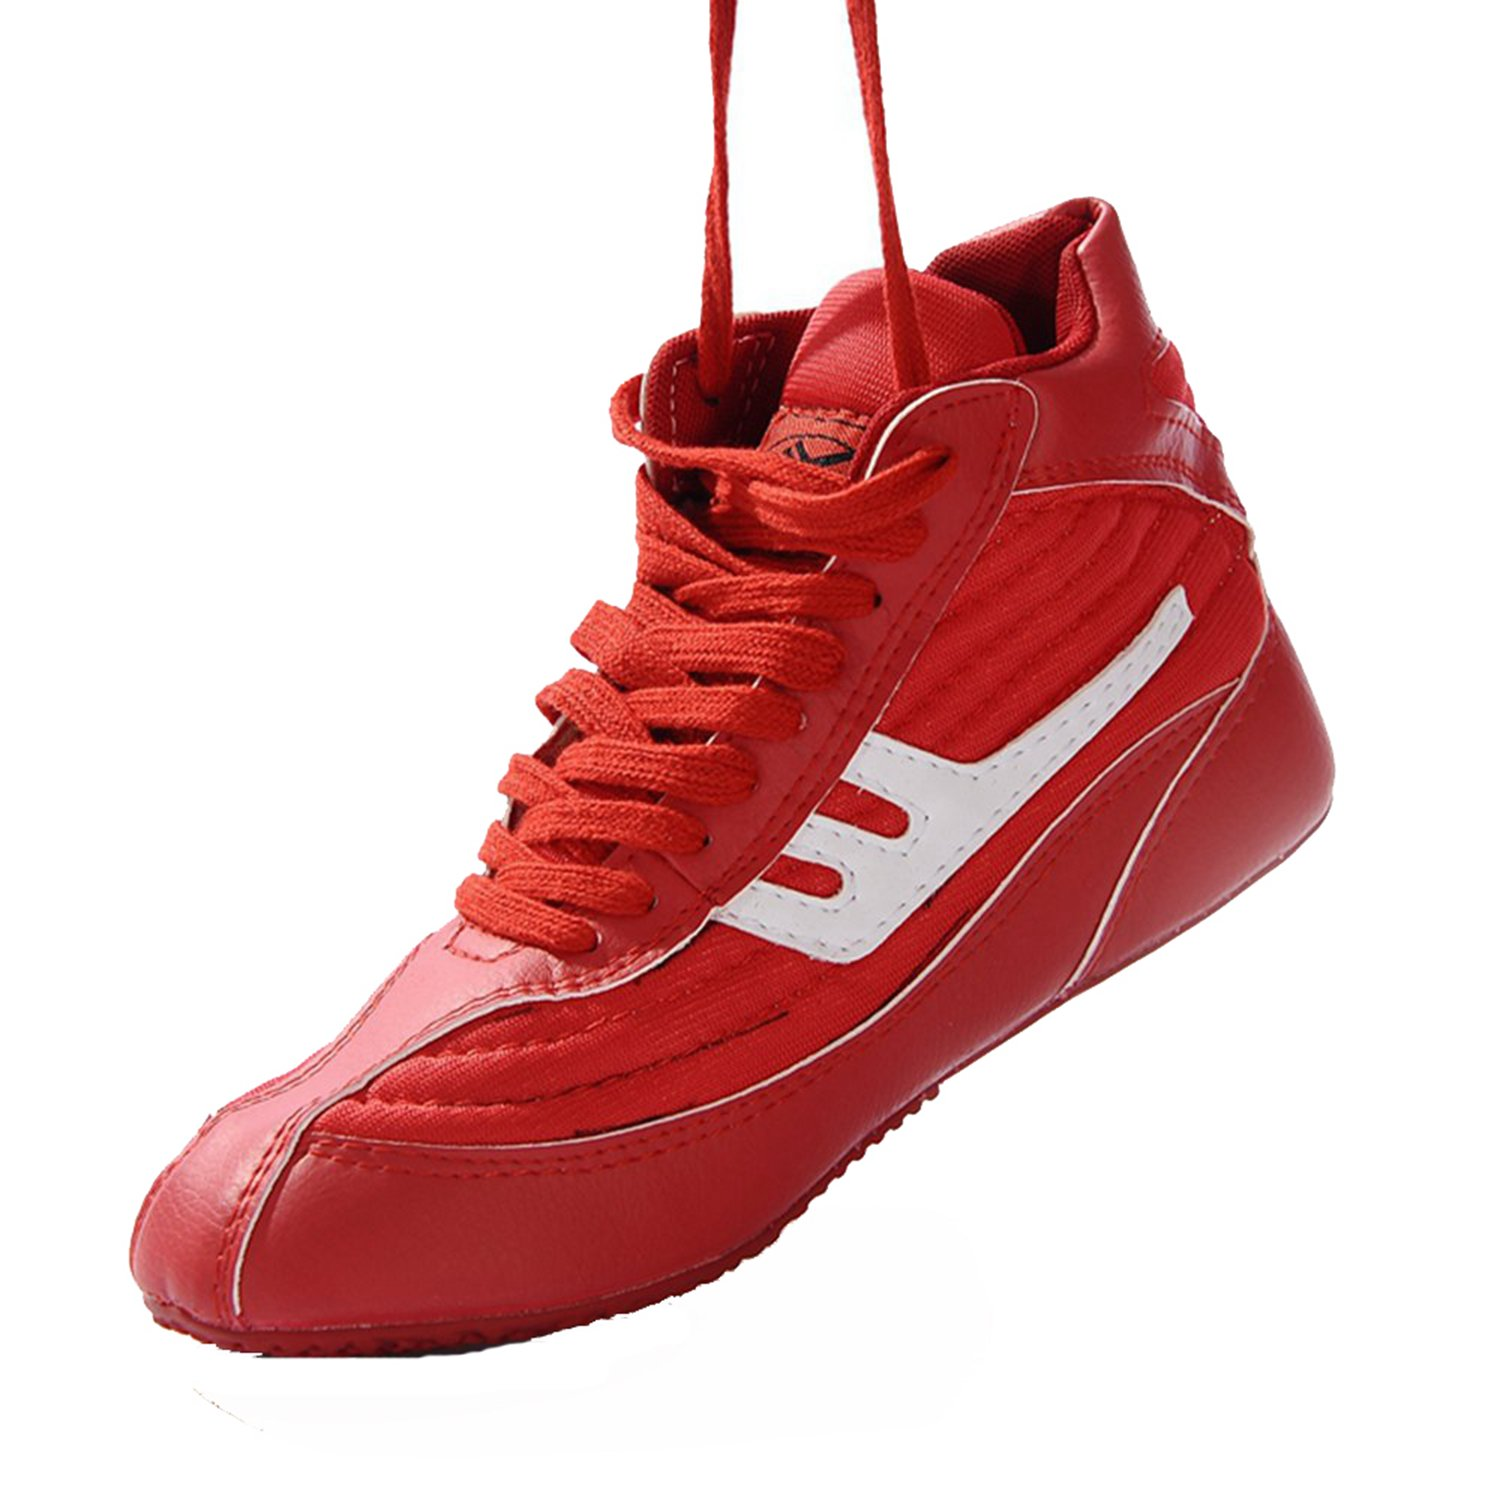 Wrestling Shoes Boxing Boots Rubber Sole Combat Training Shoes for Men&Women&Children Kids B07DB559FW 8  M US|Red